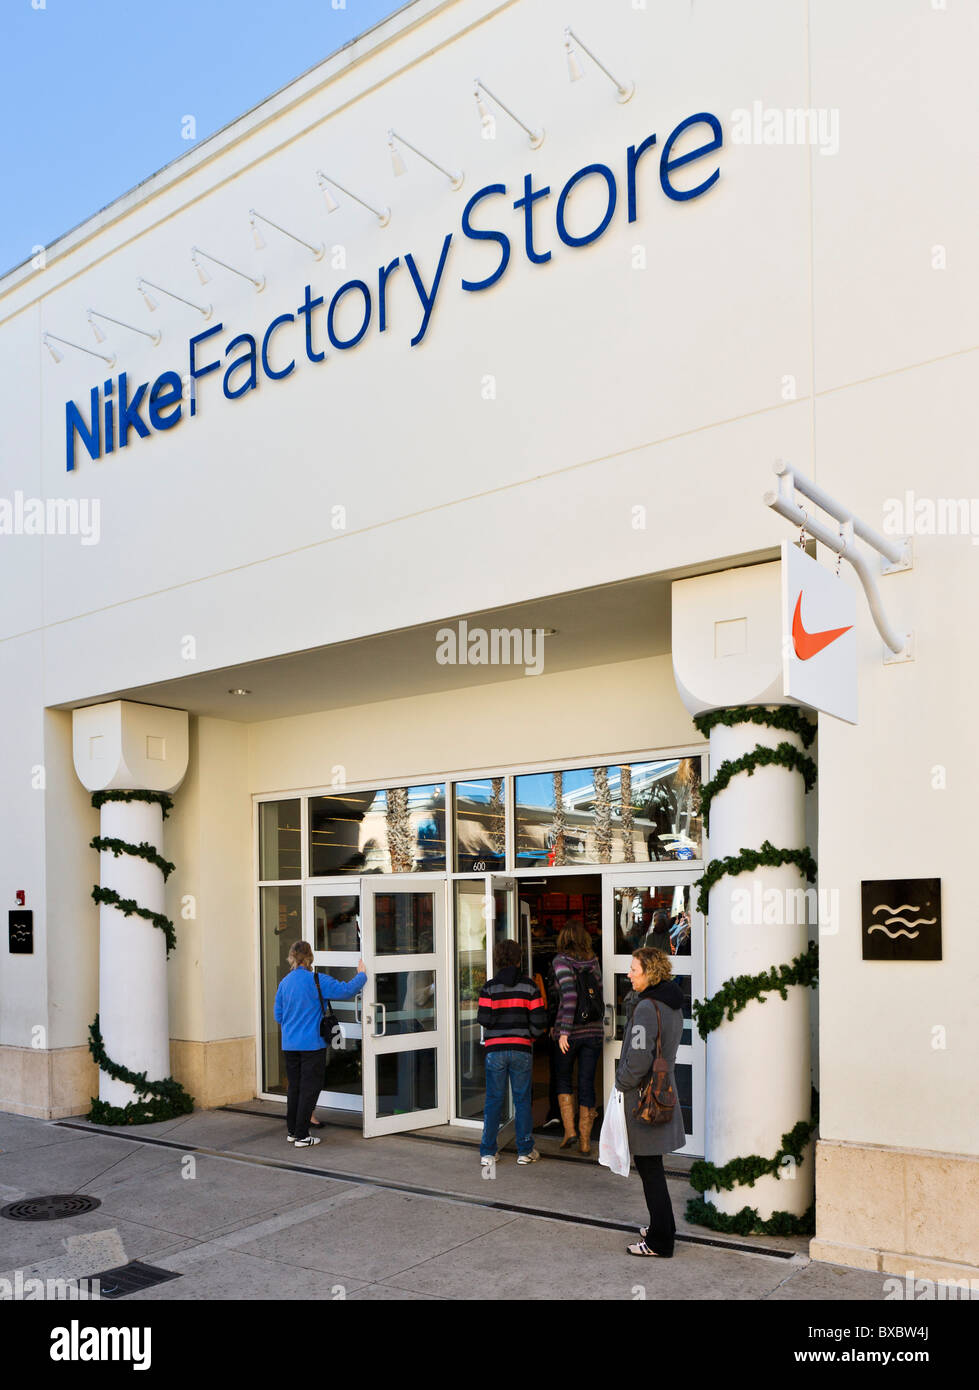 3 reviews of Nike Factory Store